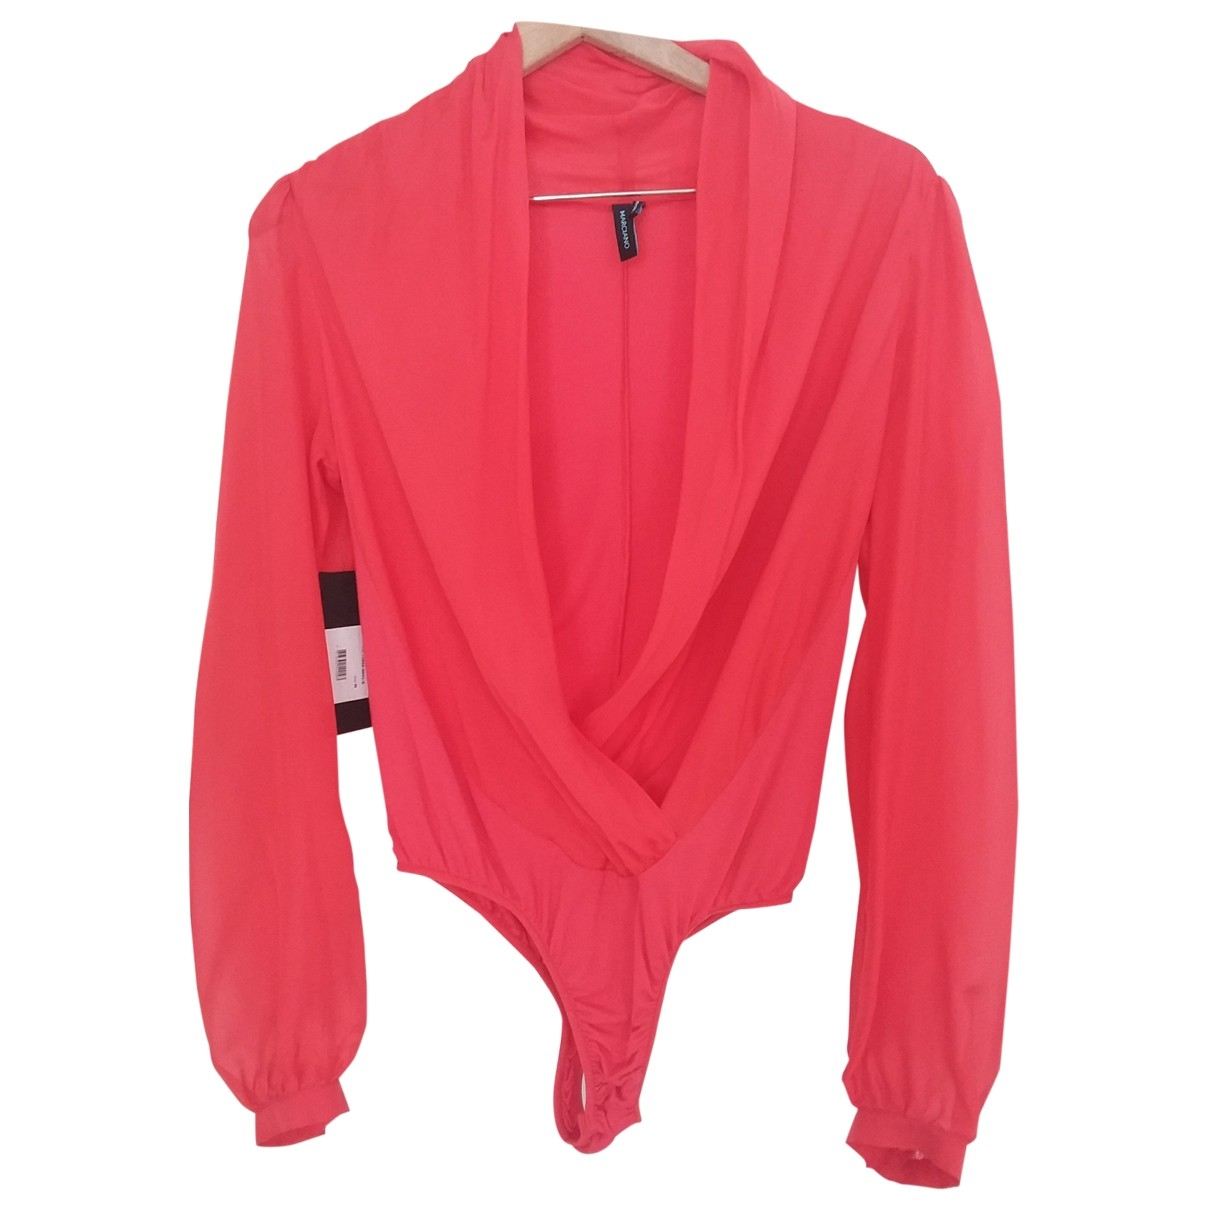 Guess \N Red Silk  top for Women M International